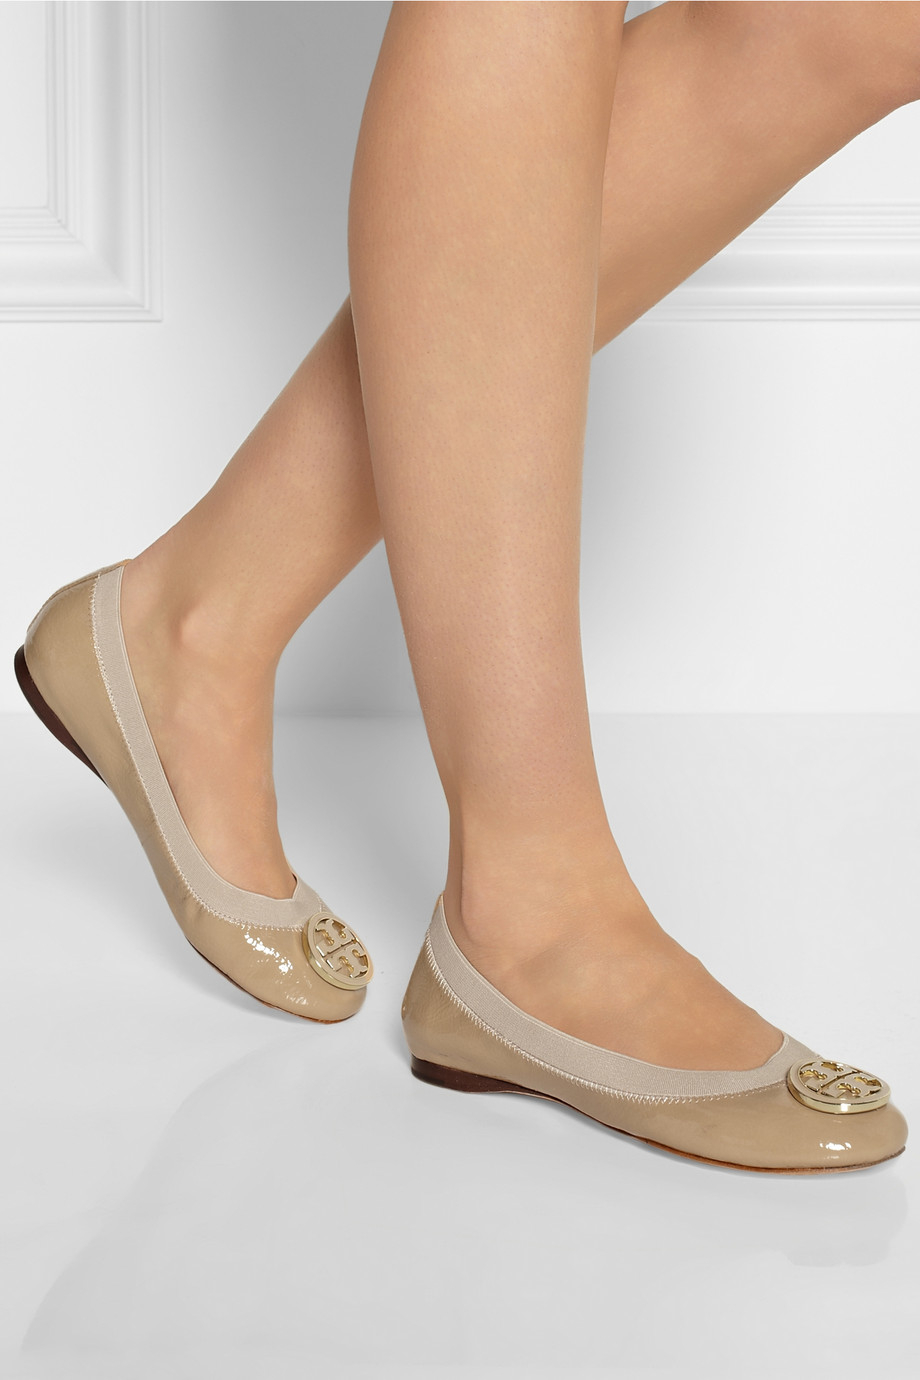 4c9adbc843a9 Tory Burch Caroline Patentleather Ballet Flats in Natural - Lyst